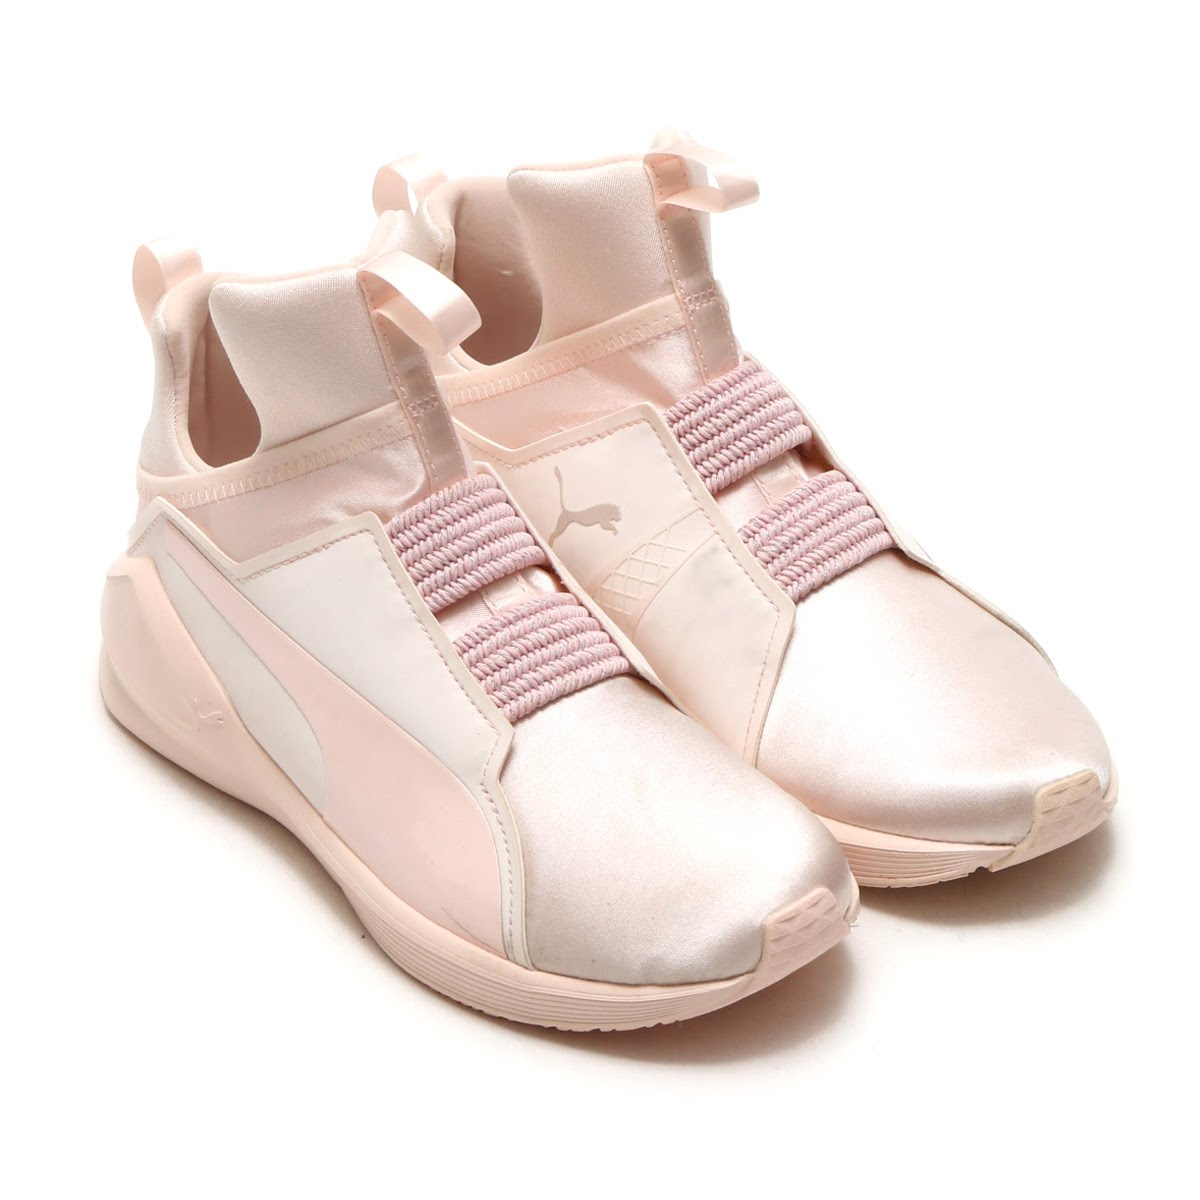 6b5c3fa1b47278 It is shoes of the recommended women size in the training scene such as  gyms. It is the style that added the refined style of the trendy street to  a ...